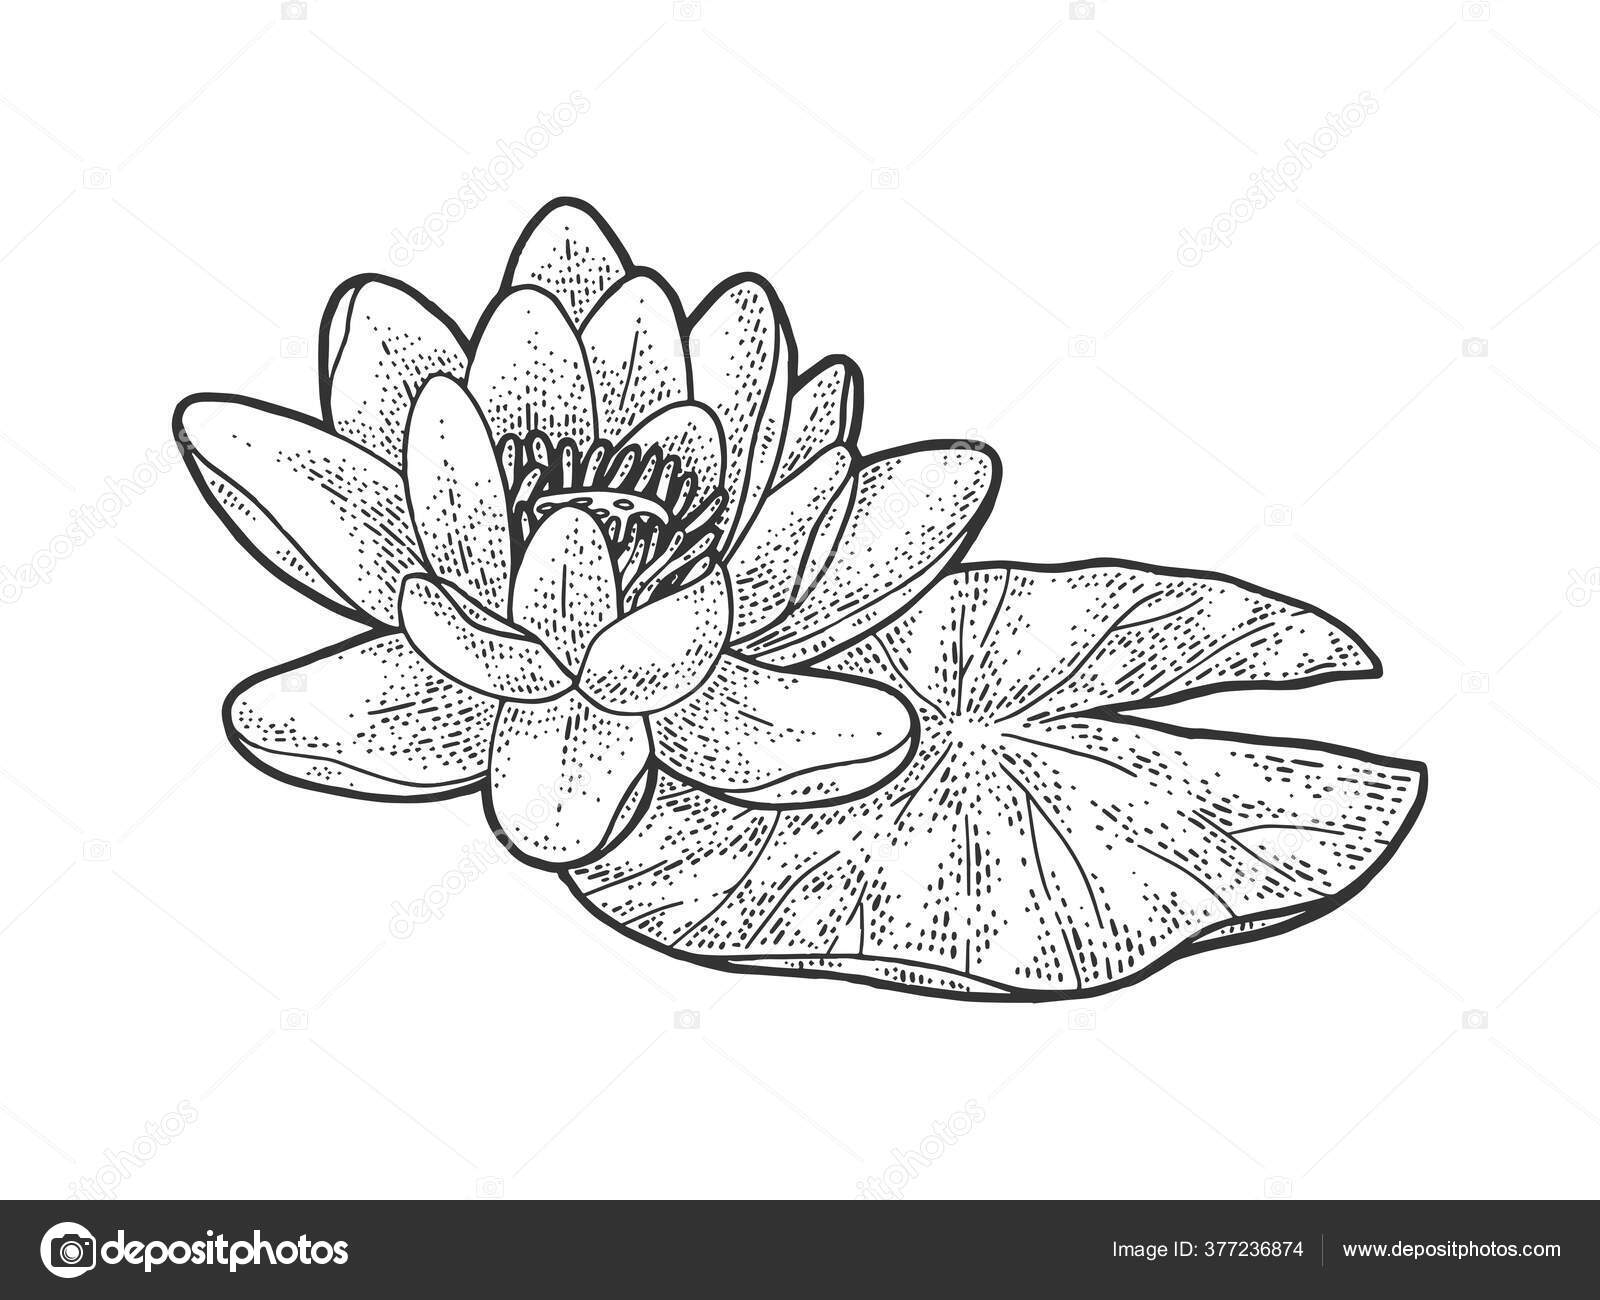 Lotus Nelumbo Water Lily Flower Sketch Engraving Vector Illustration T Shirt Apparel Print Design Scratch Board Imitation Black And White Hand Drawn Image Vector Image By C Alexanderpokusay Vector Stock 377236874